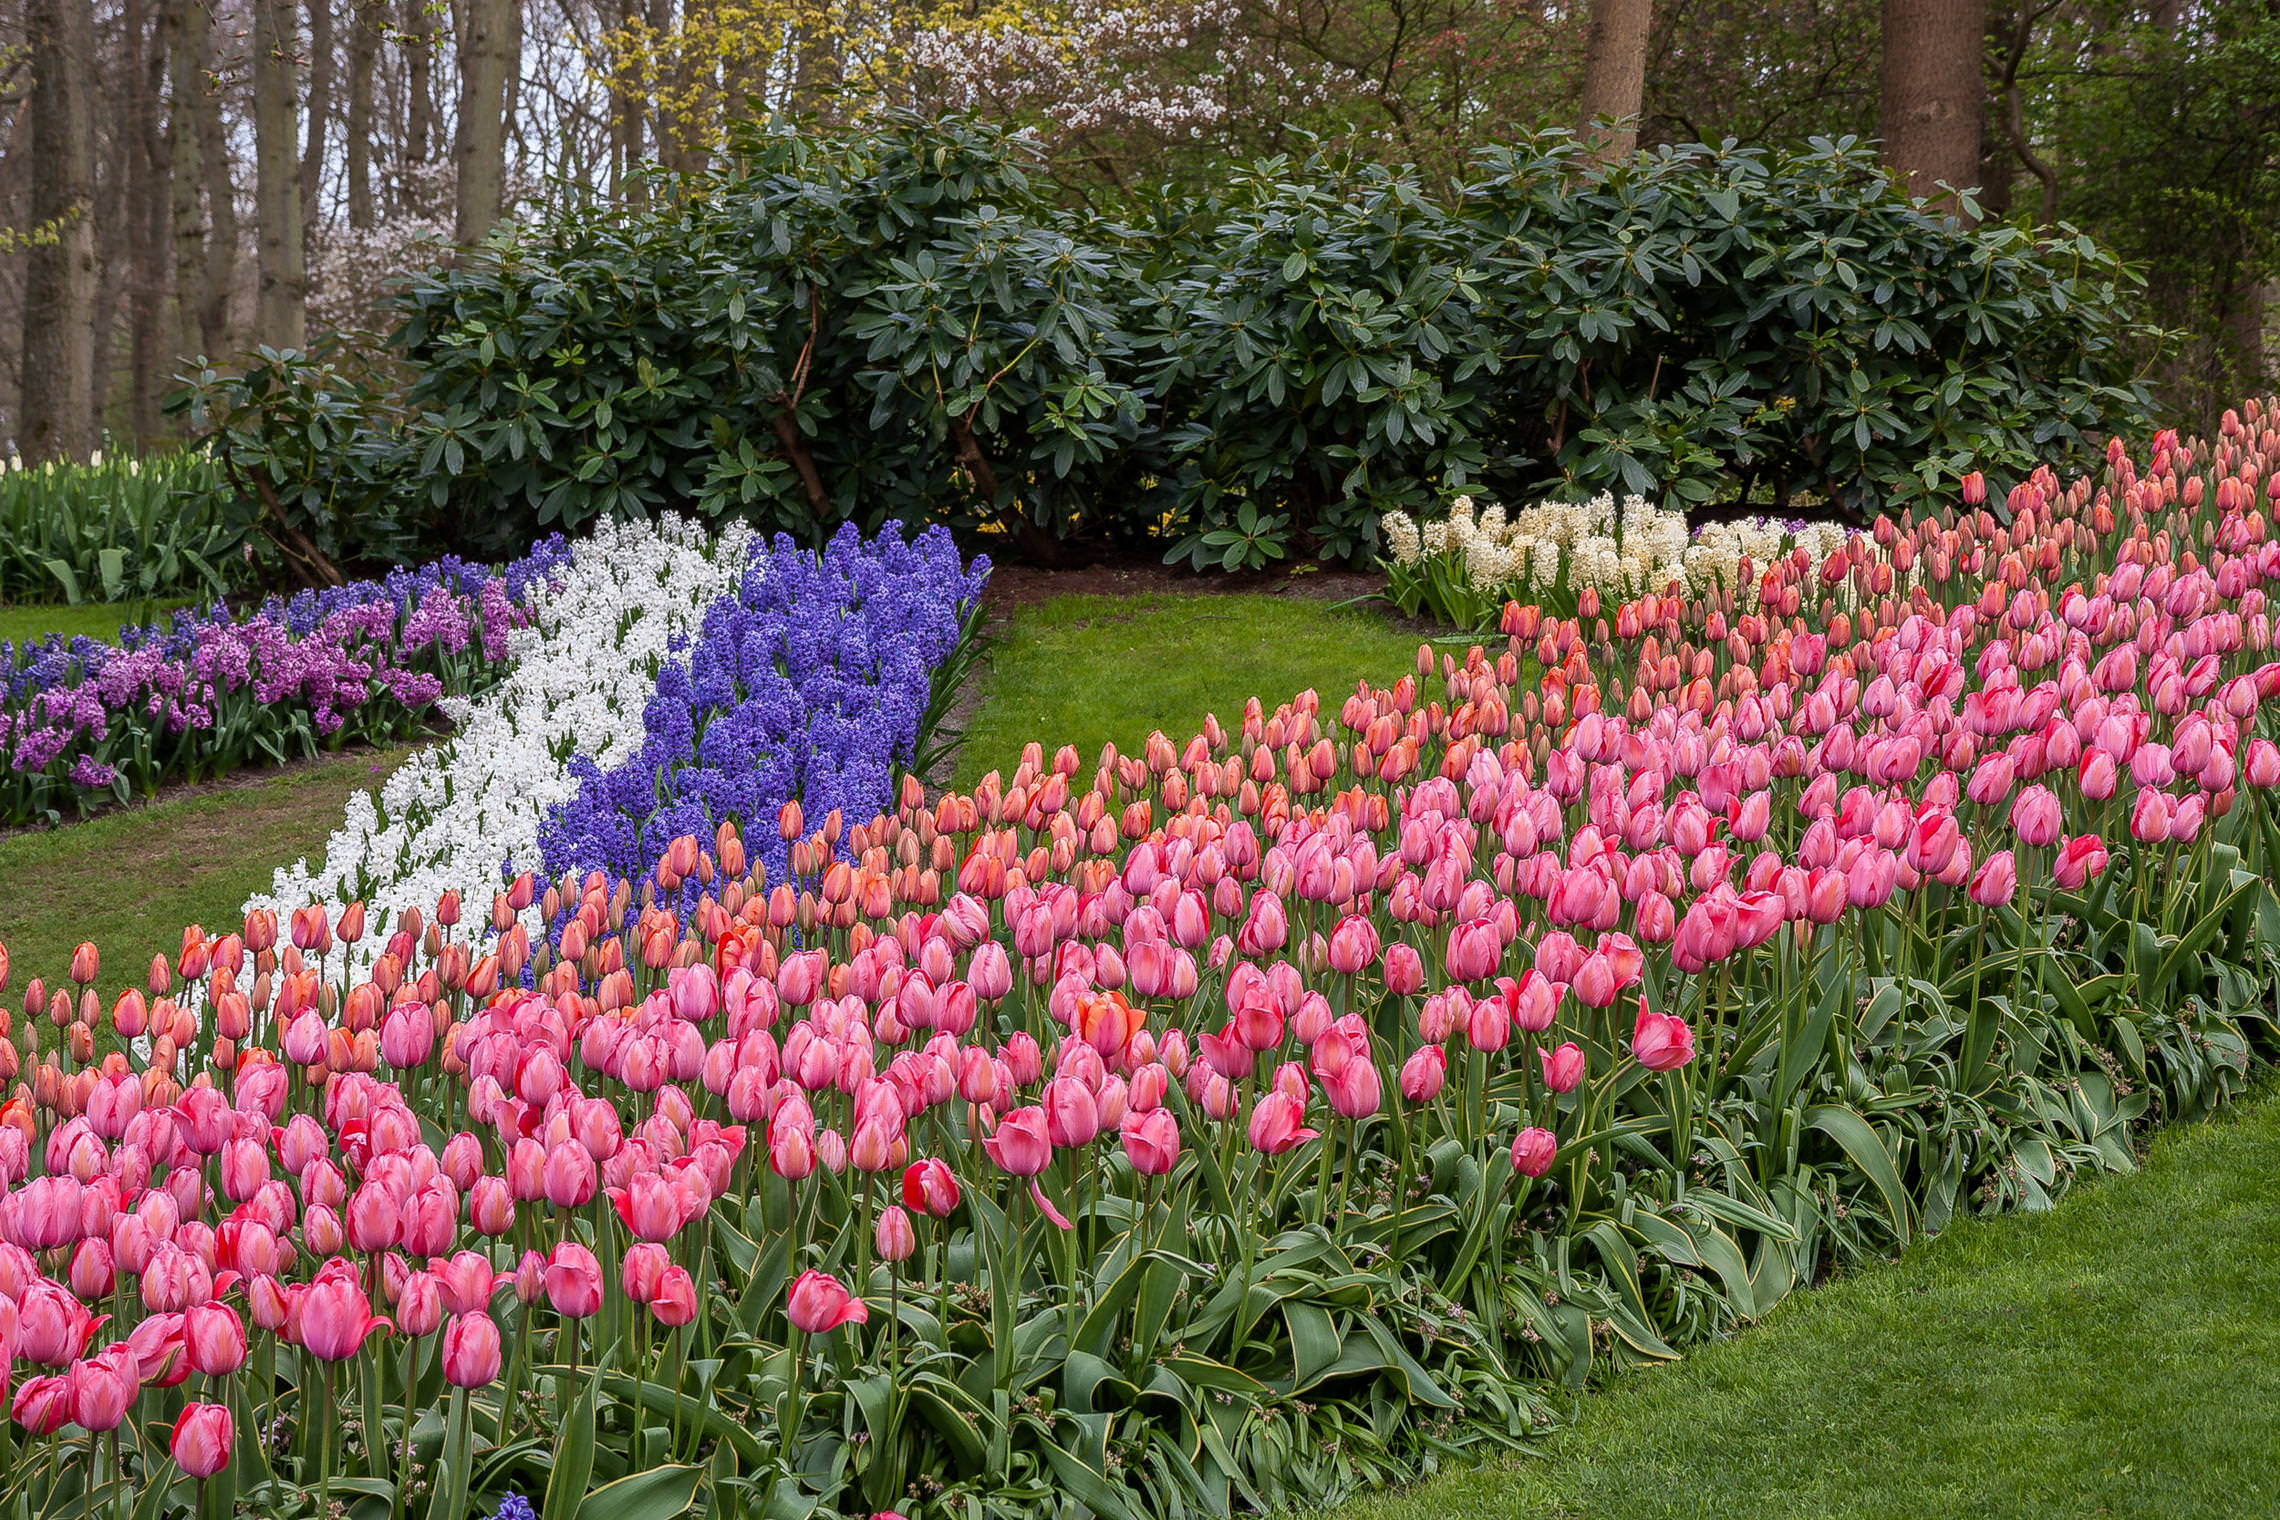 Tulips in Holland 04-2015 (16)